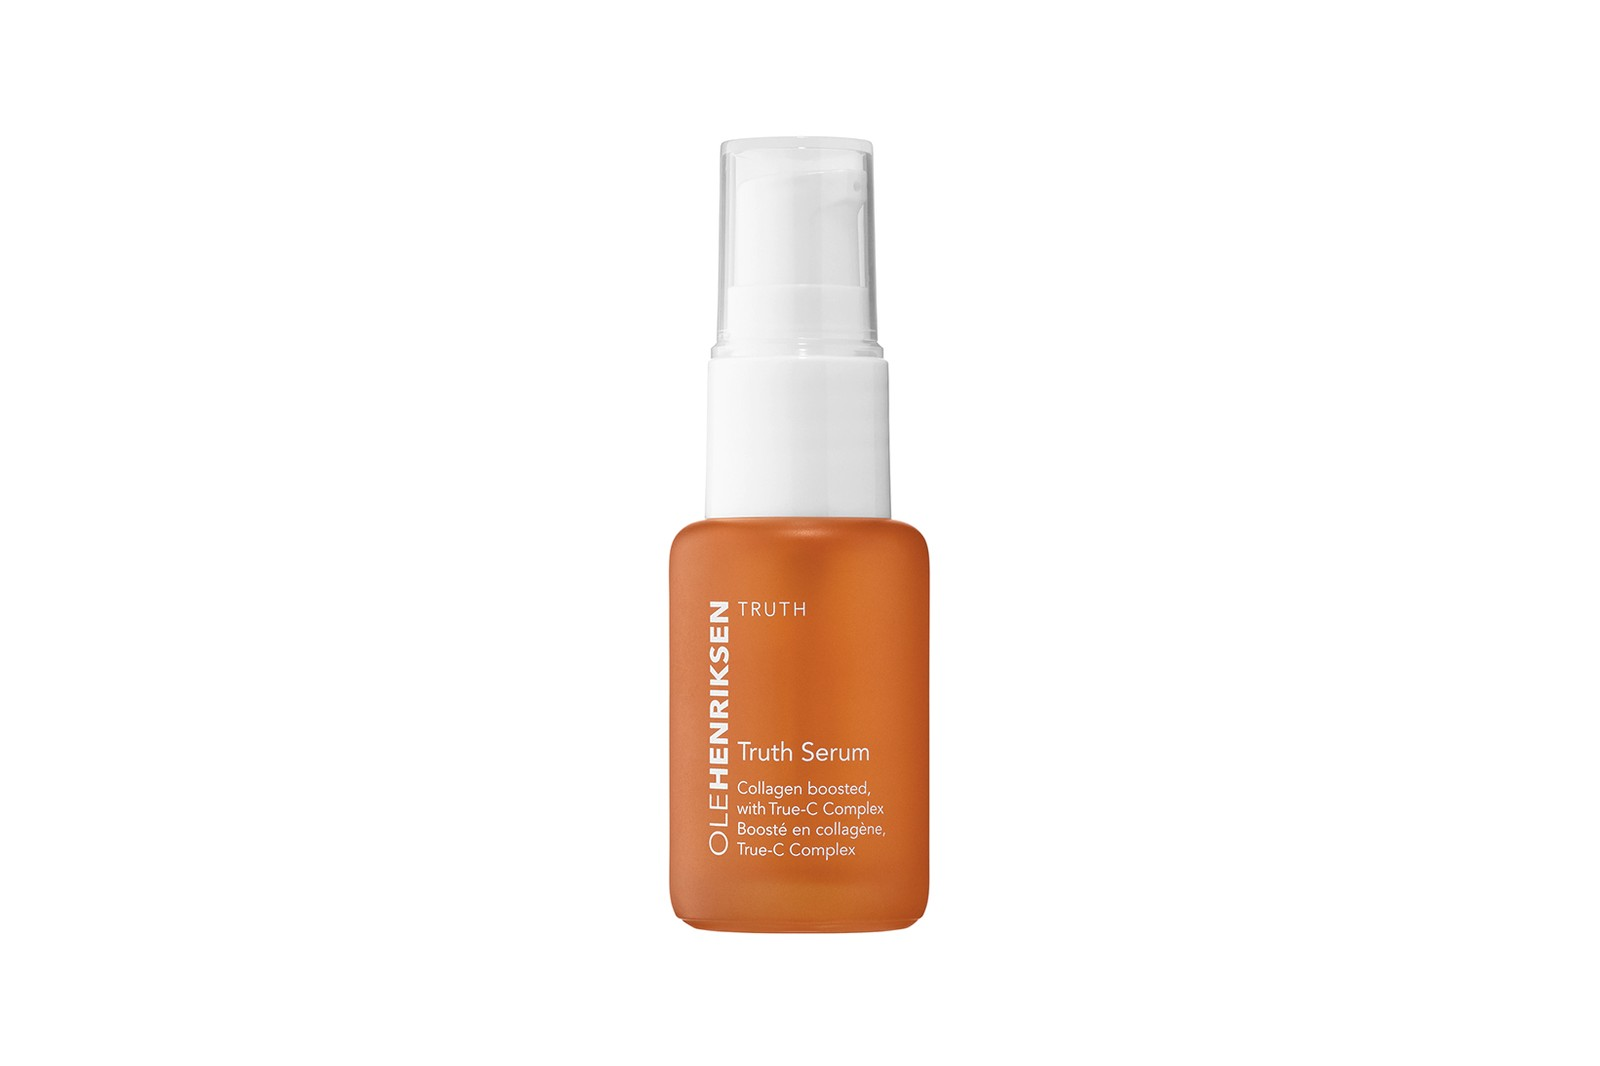 best vitamin c face serums glow recipe pineapple brightening ole henriksen truth skincare beauty